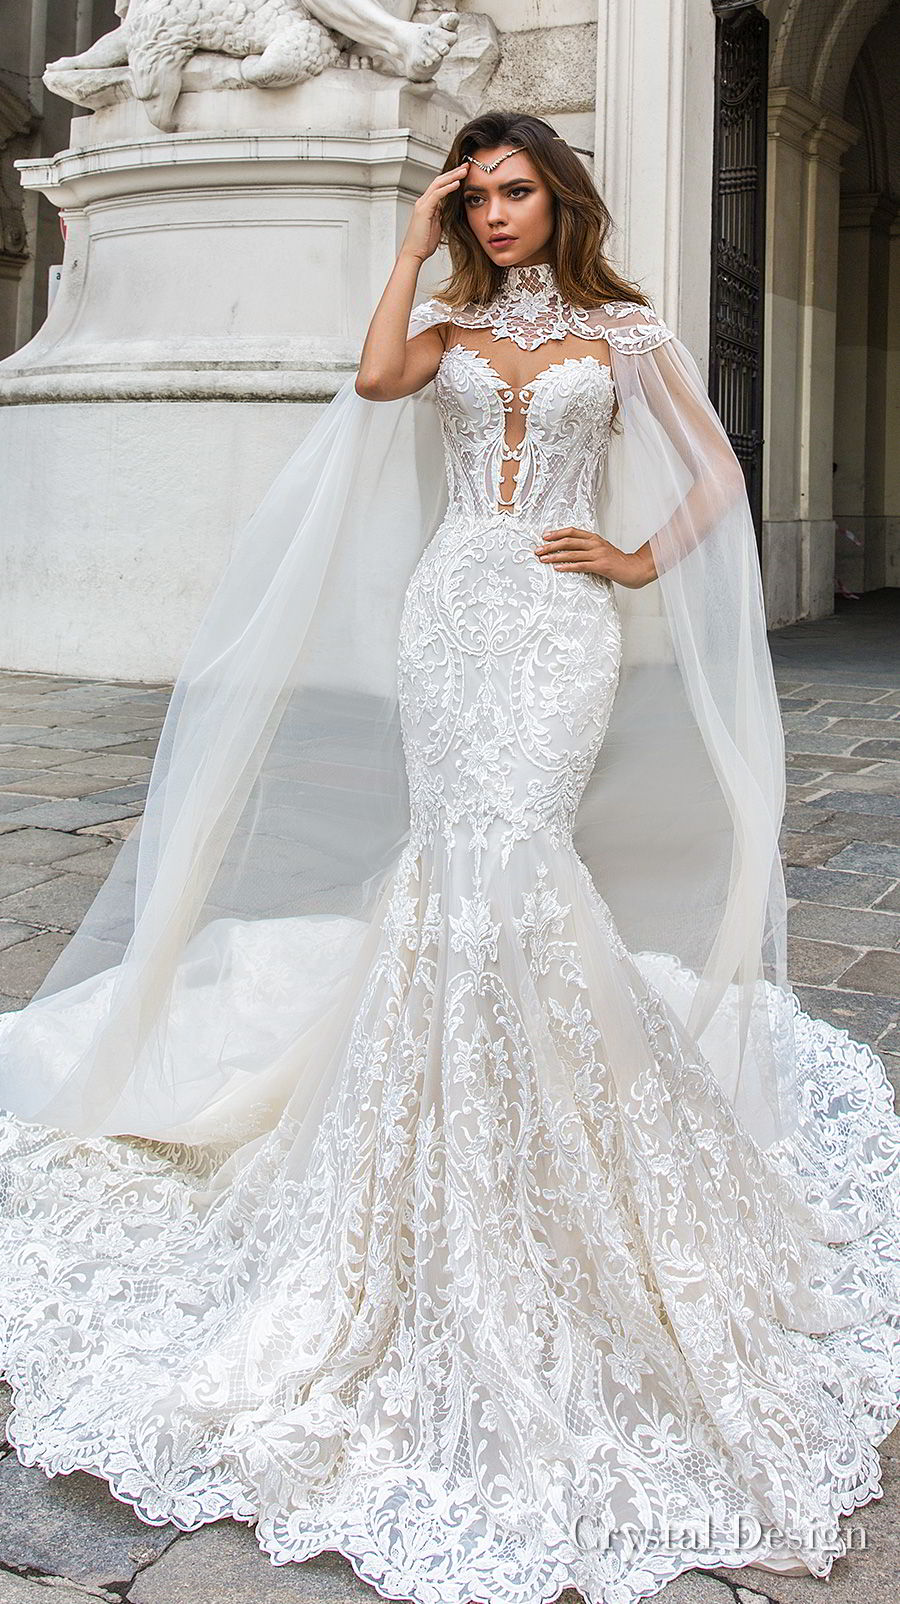 Crystal Design 2018 Wedding Dresses